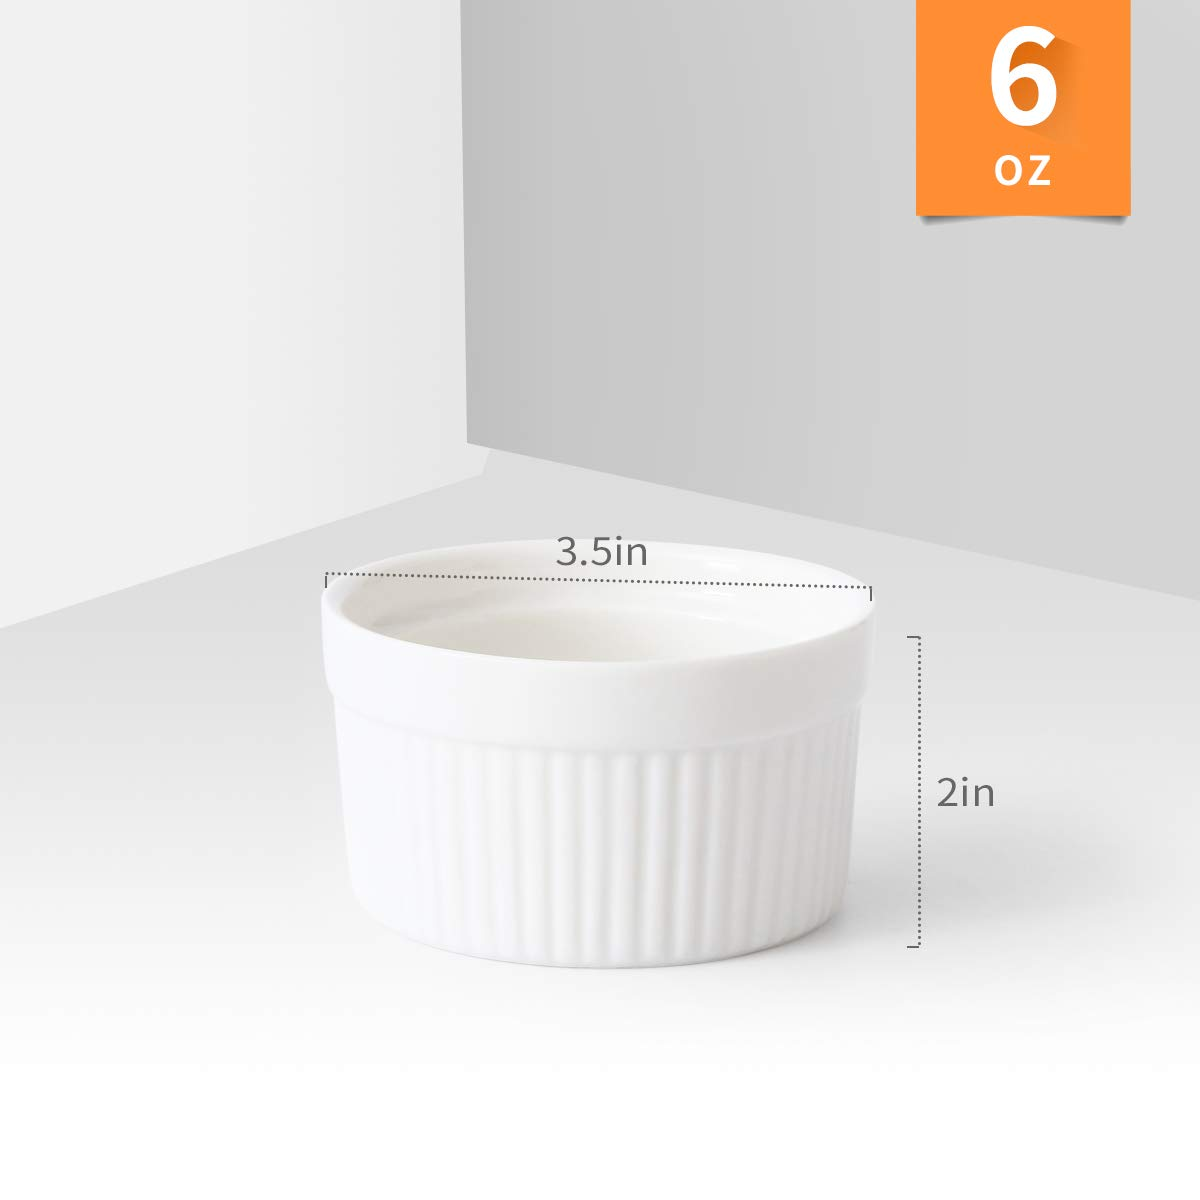 6 oz Ramekin Set of 8 Serving Bowl for Souffle Creme Brulee and Dipping Sauces Porcelain White by LAUCHUH (Image #1)